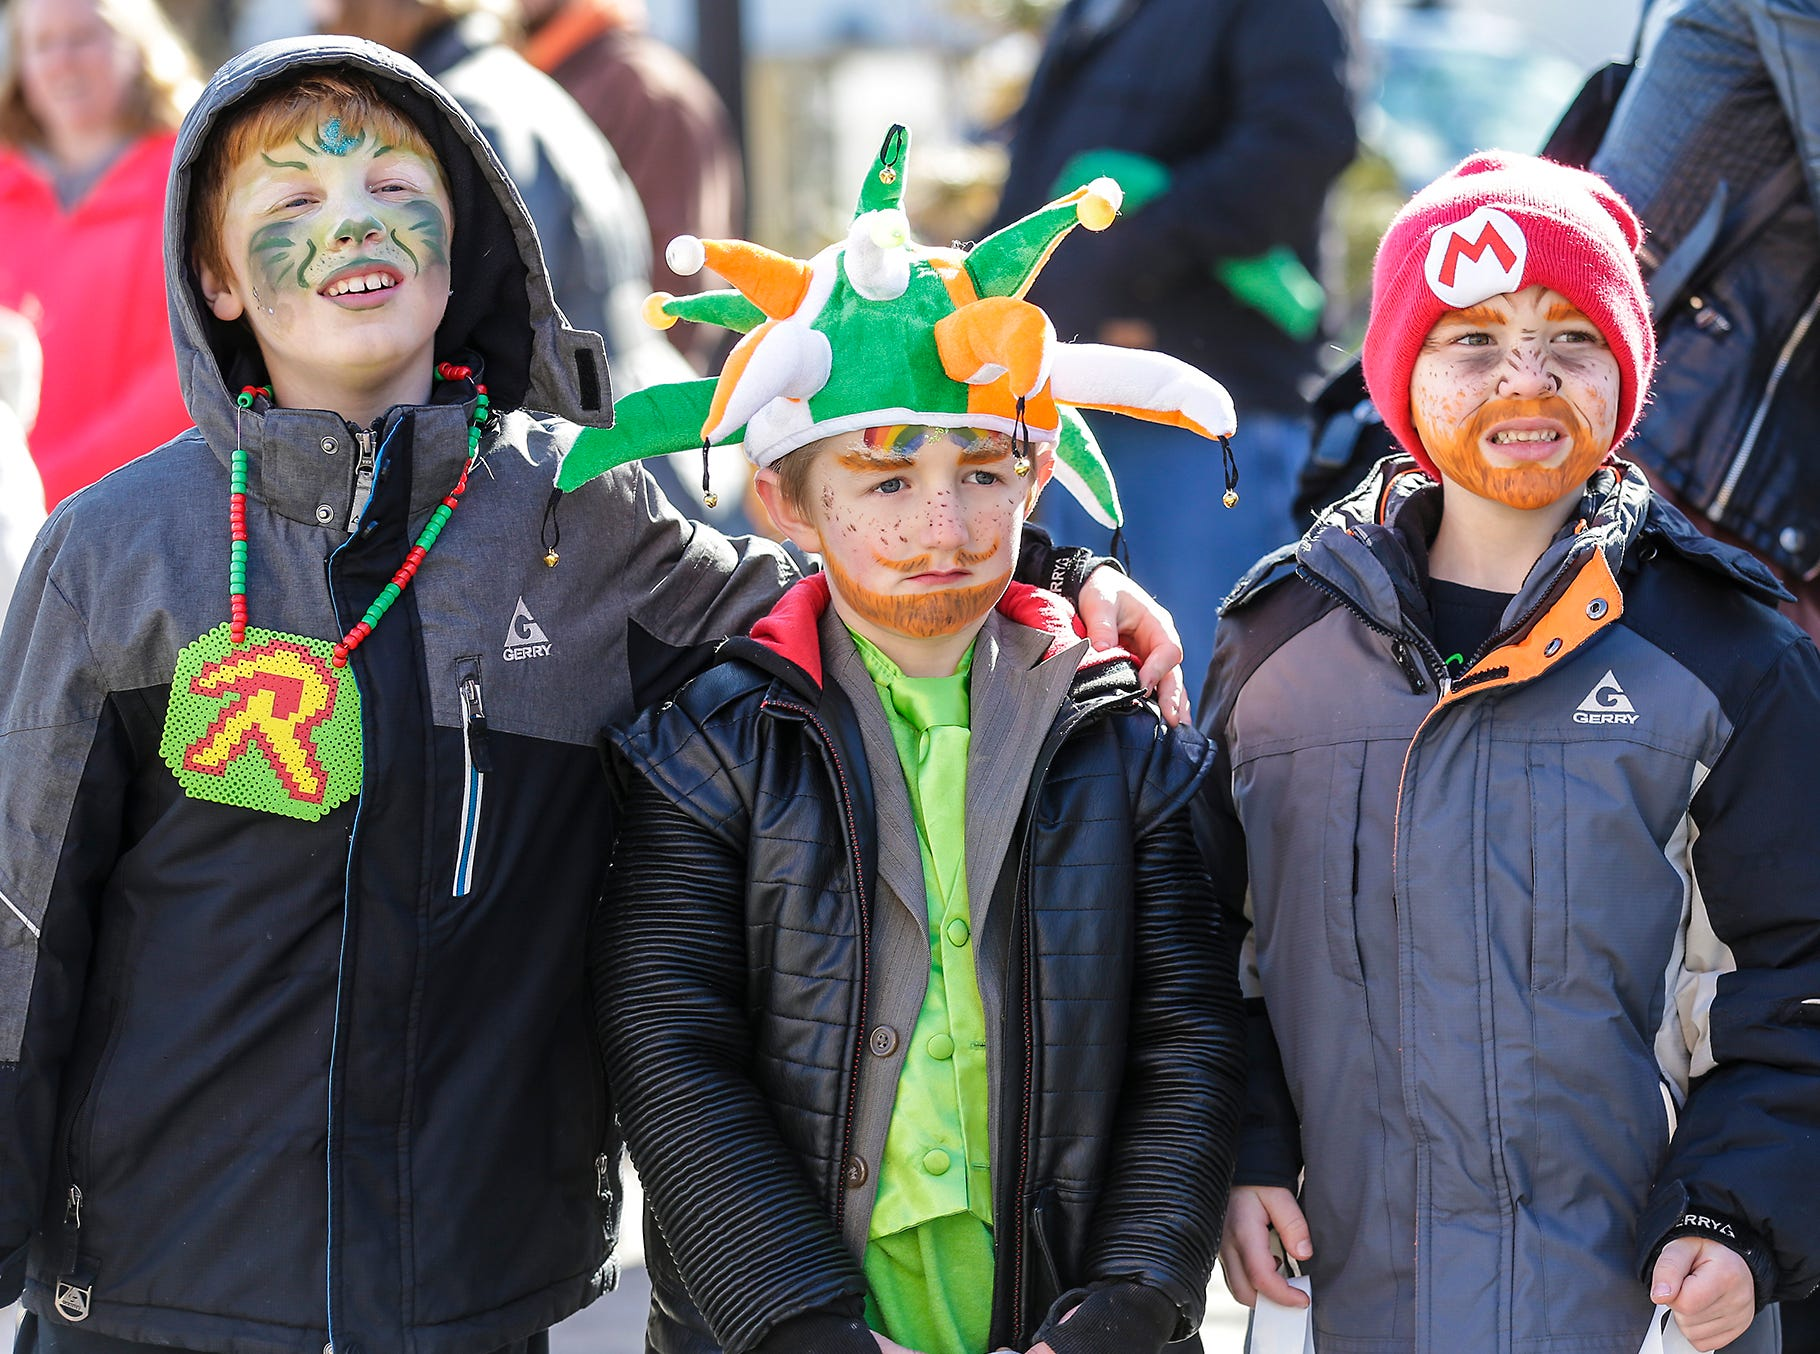 Connor, Wyatt and Dexter Rady of Fond du Lac watch the City of Fond du Lac St. Patrick's Day Parade Saturday, March 16, 2019 on Main Street in downtown Fond du Lac. Hundreds of people lined the street to watch over 50 parade participants. Doug Raflik/USA TODAY NETWORK-Wisconsin